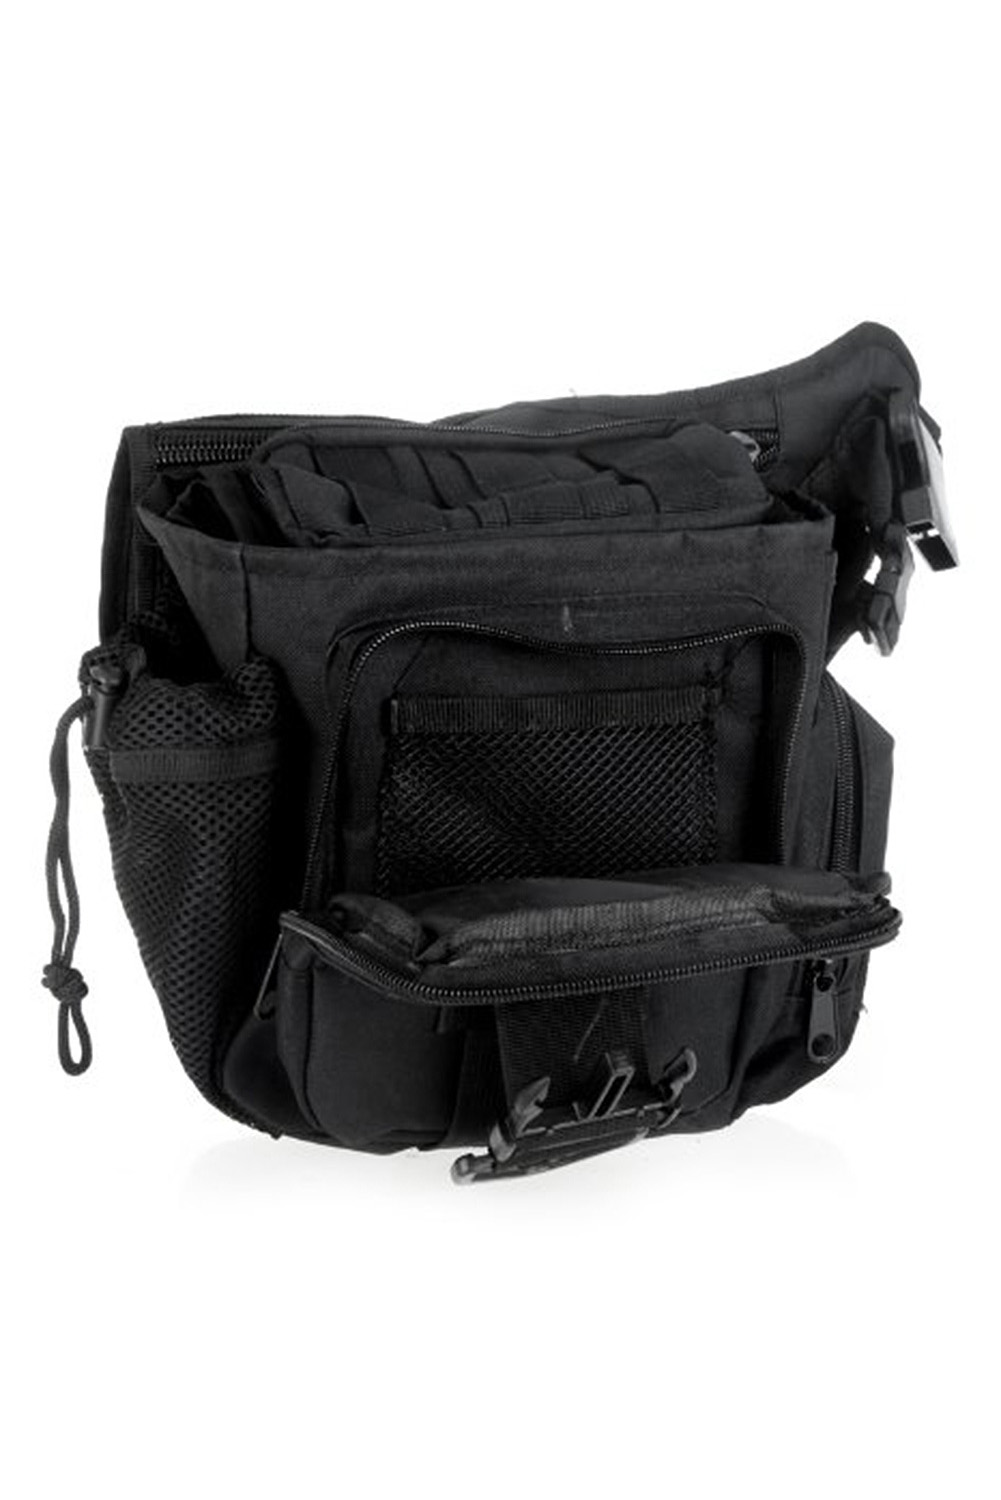 2Pcs 600D Nylon Molle Shoulder Strap Bag Military Push Pack Belt Pouch Travel Backpack Camera Money Utility Bag Black